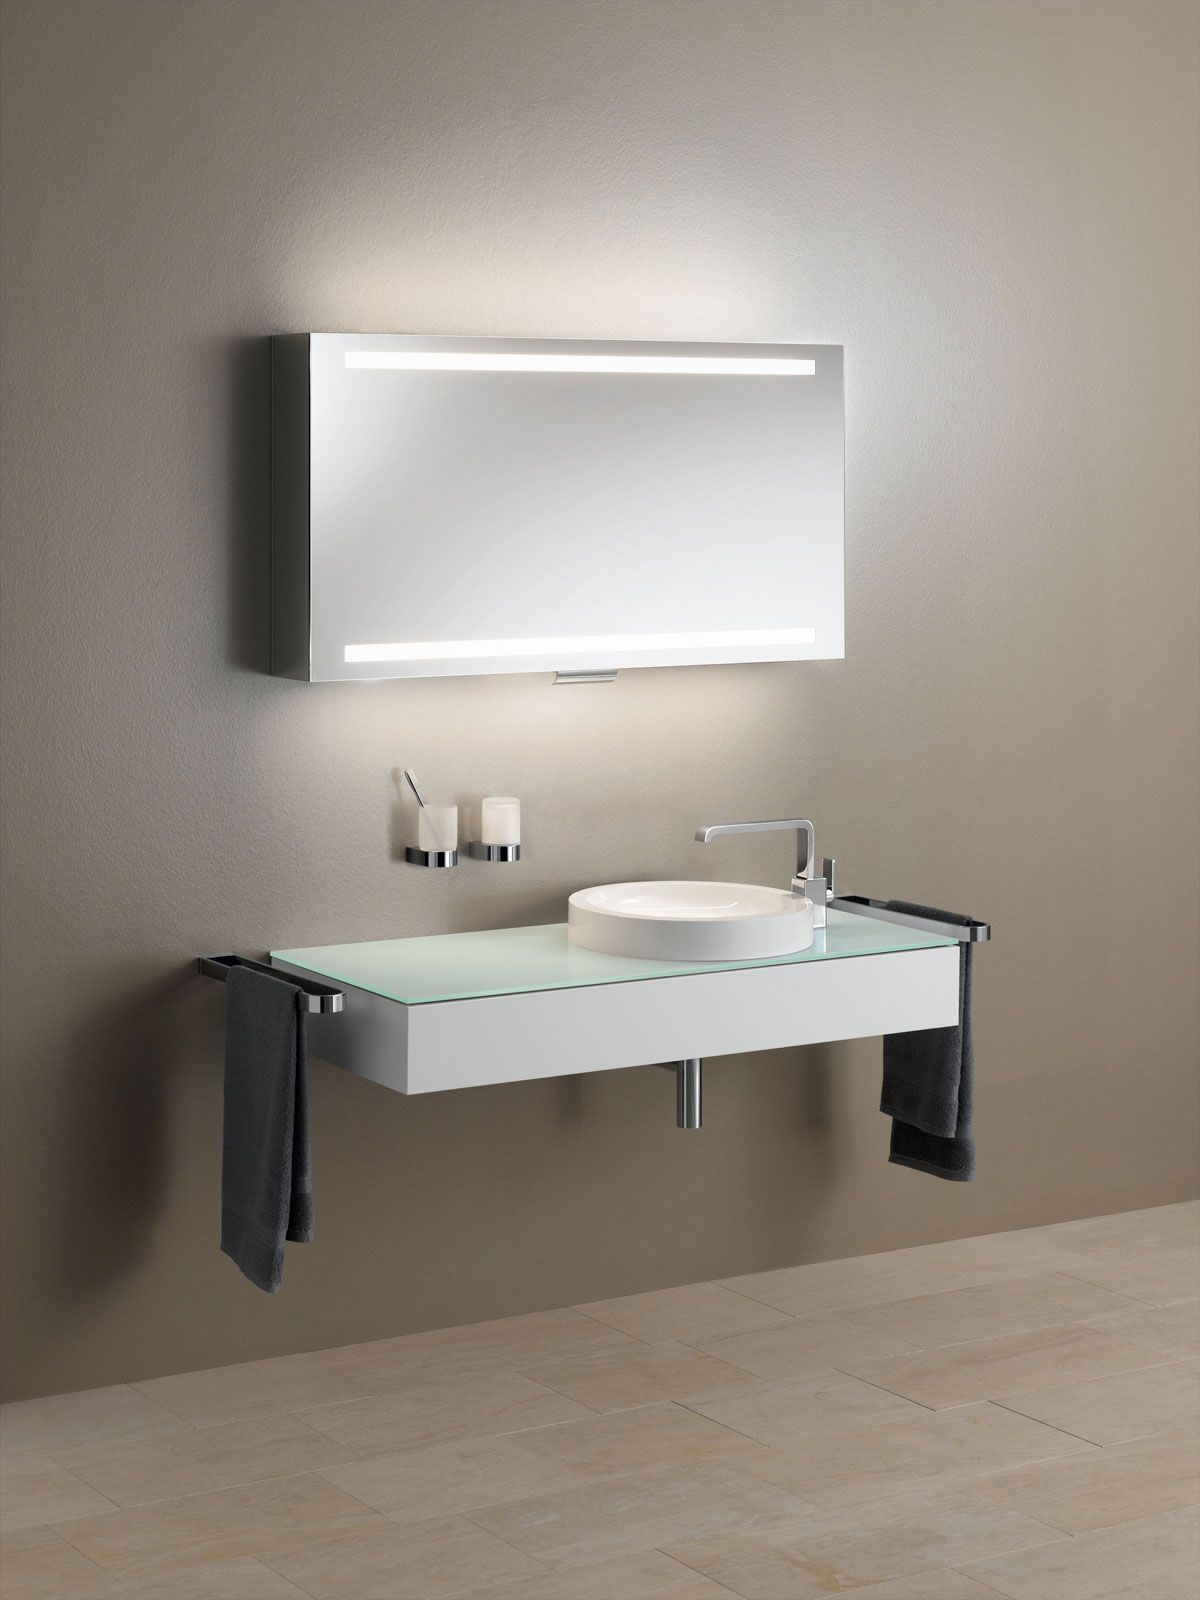 Keuco Edition 300 Furniture Range Bathroom accessories